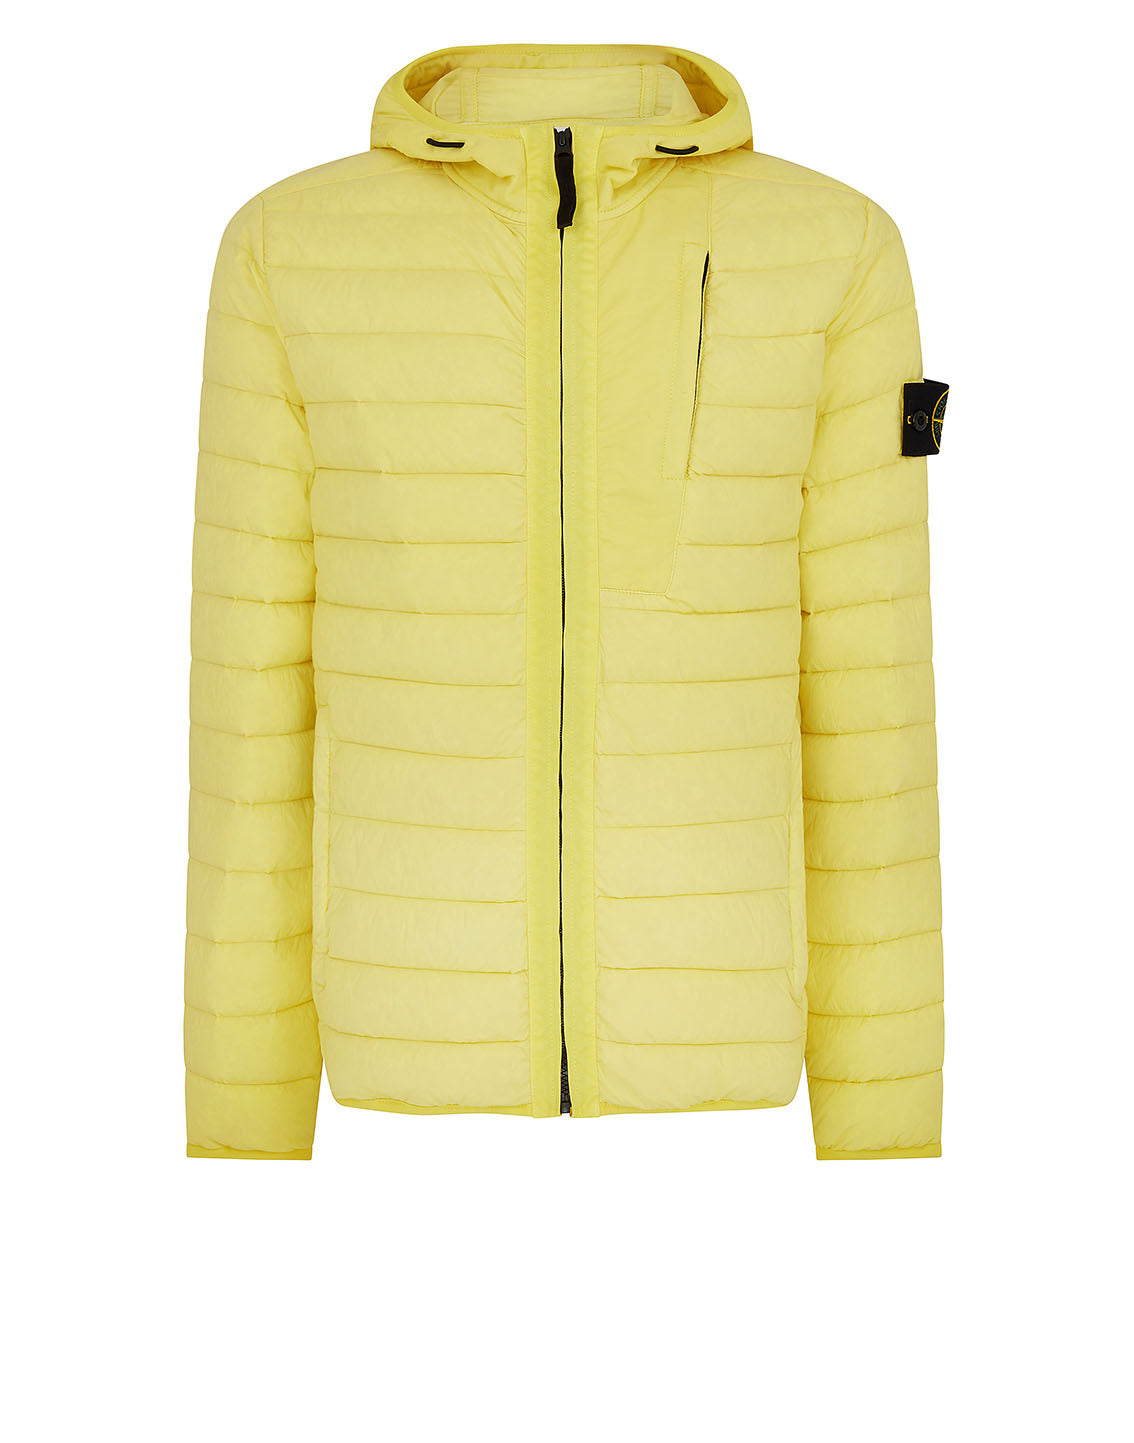 41225 LOOM WOVEN DOWN CHAMBERS STRETCH NYLON-TC Jacket in Lemon